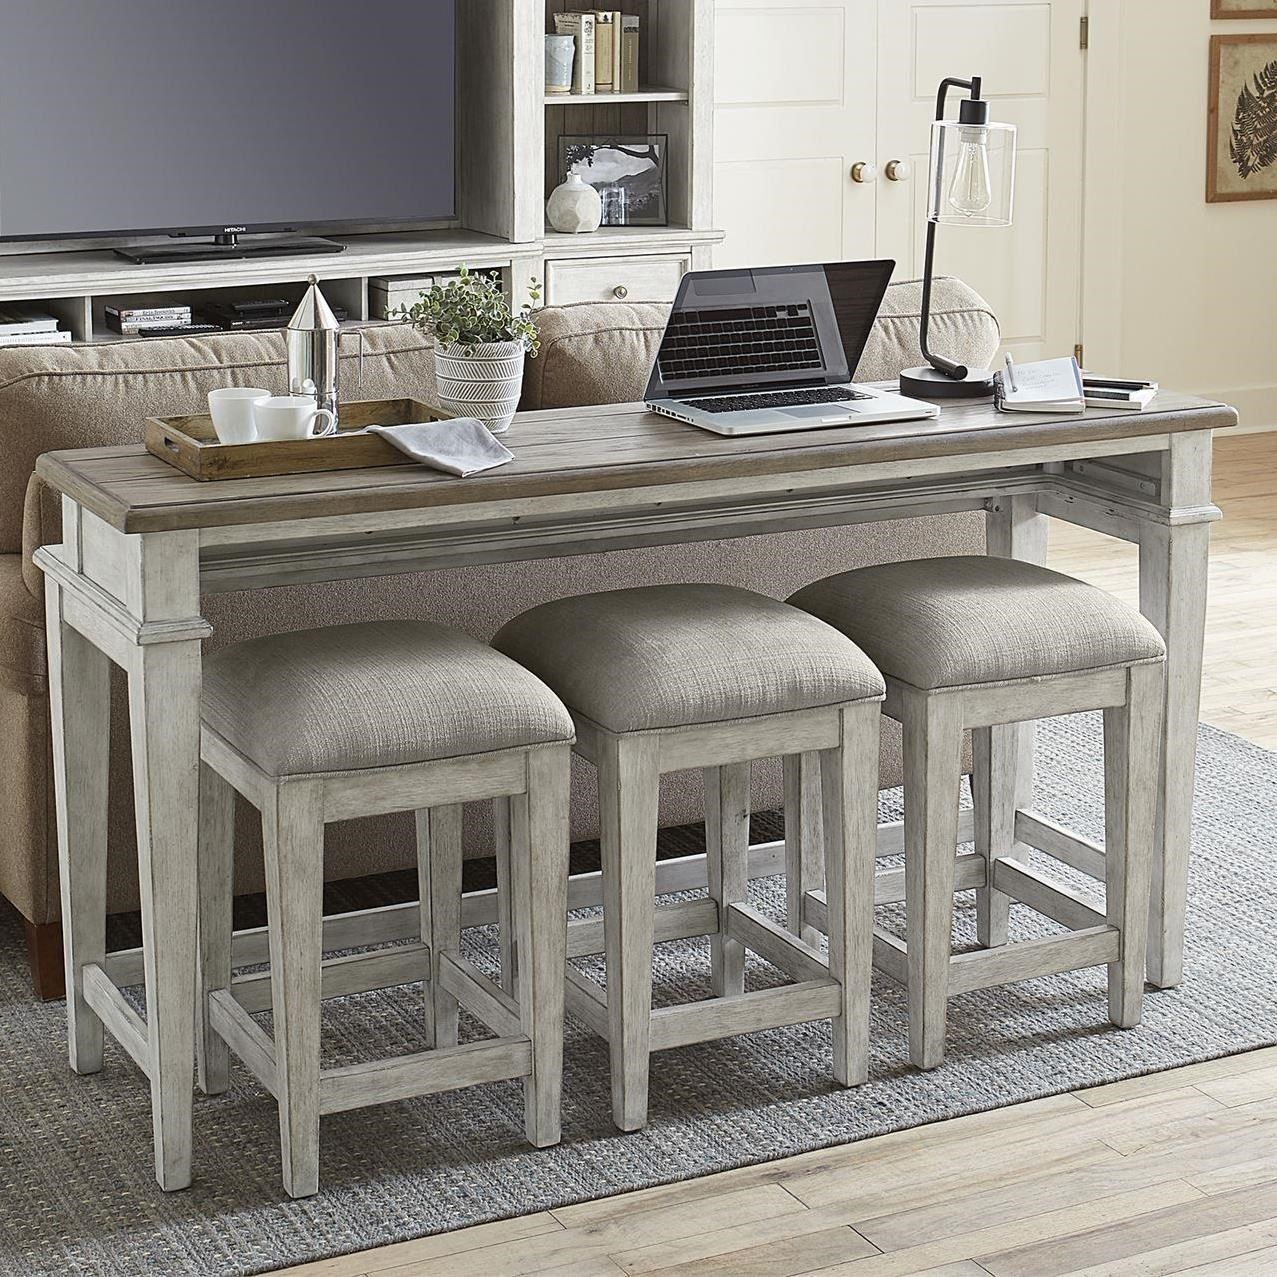 Haven 4-Piece Console Bar Table Set by Libby at Walker's Furniture